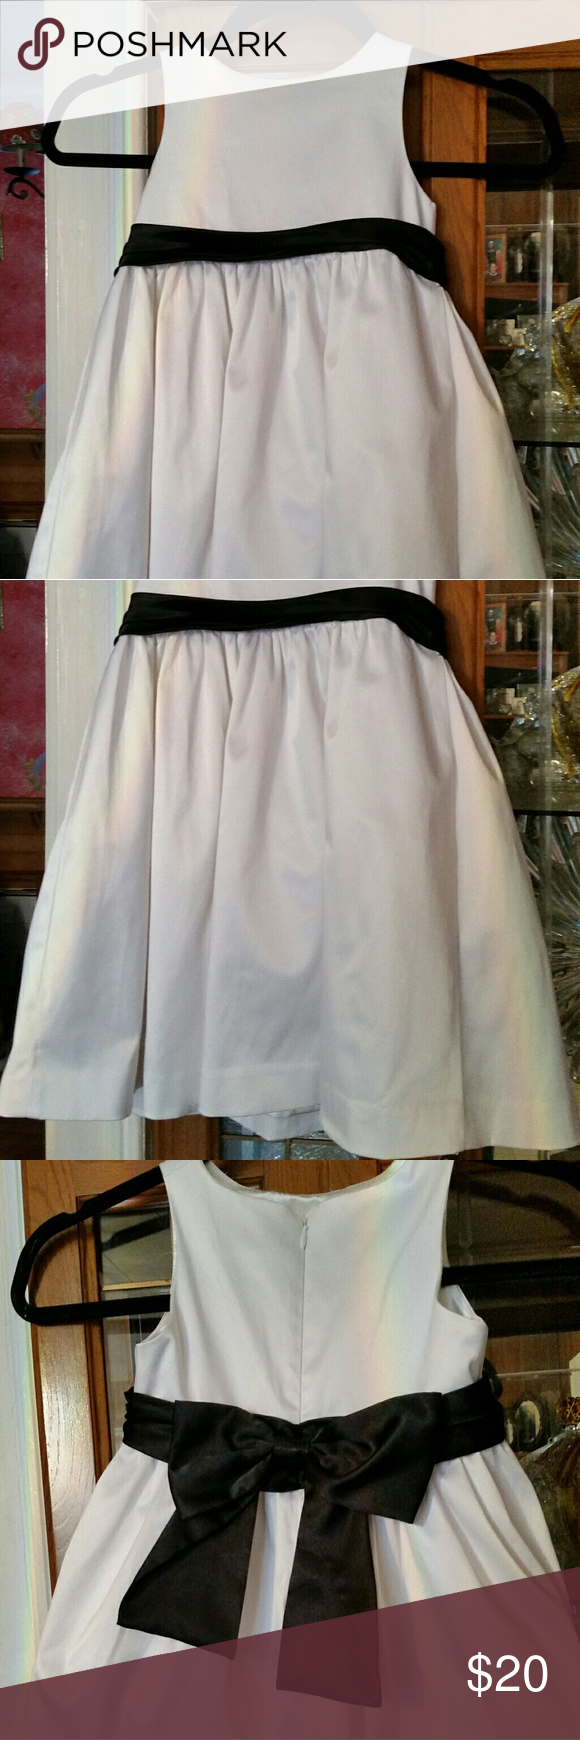 Isaac Mizrahi Little Girl's White Dress Little Girl's white dress with black sash with bow that snaps on back.  It is dry clean only so I ironed it, but did not have it dry cleaned.  Cute little dress that can be used for flower girl dress or special occasion.  There are no stains.  Discoloration is from my light. Isaac Mizrahi Dresses Formal